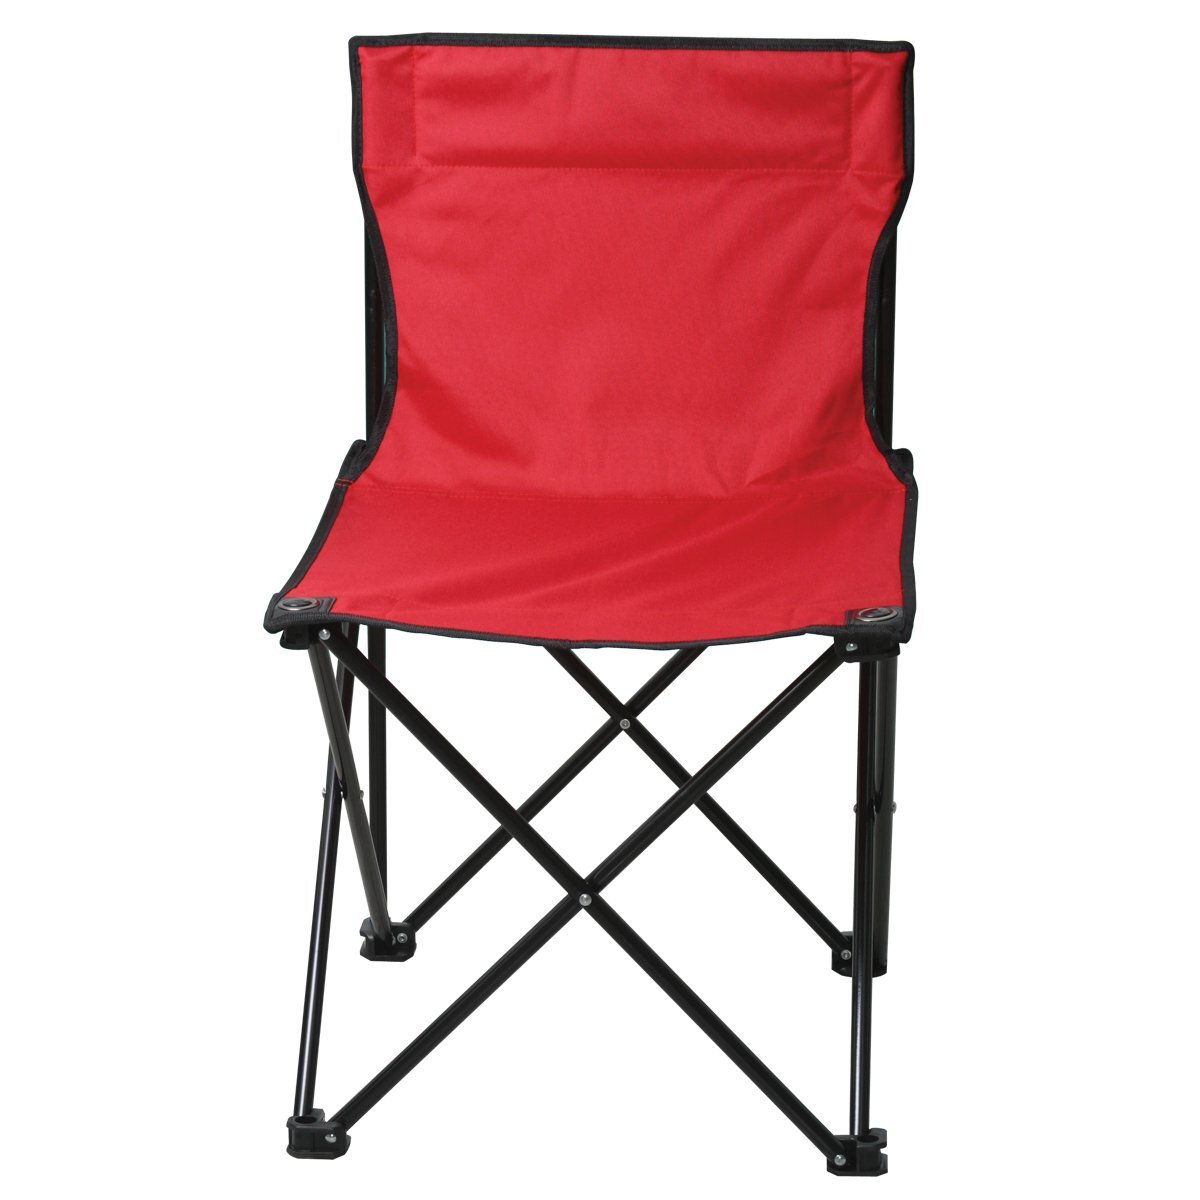 Budget Beater Folding Leisure Chair